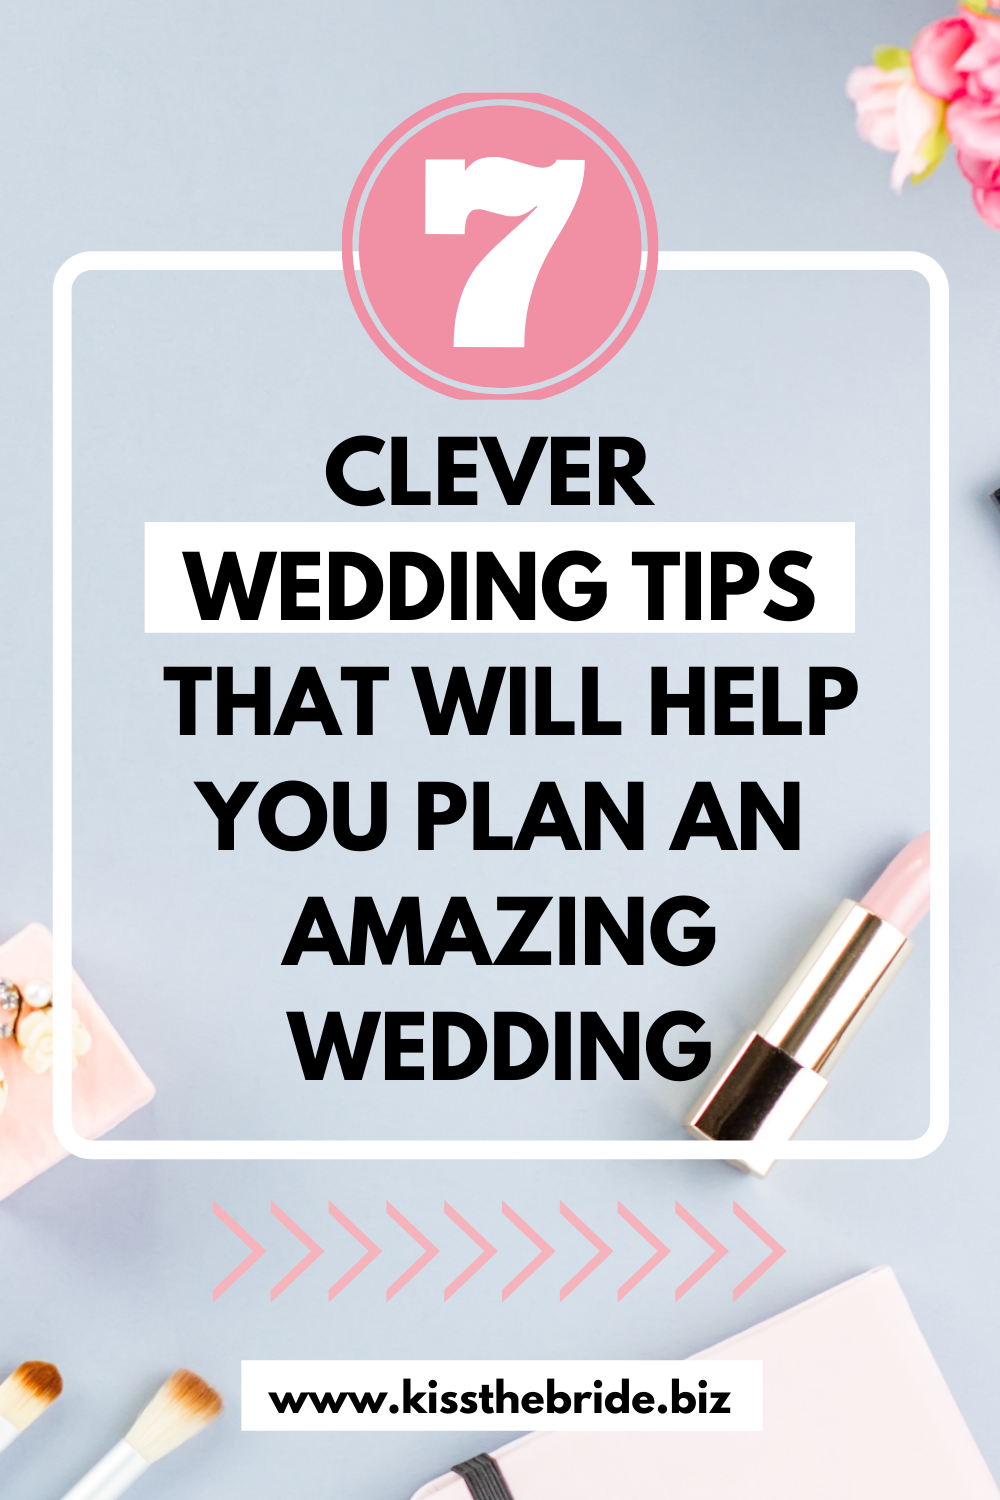 Brilliant Wedding tips